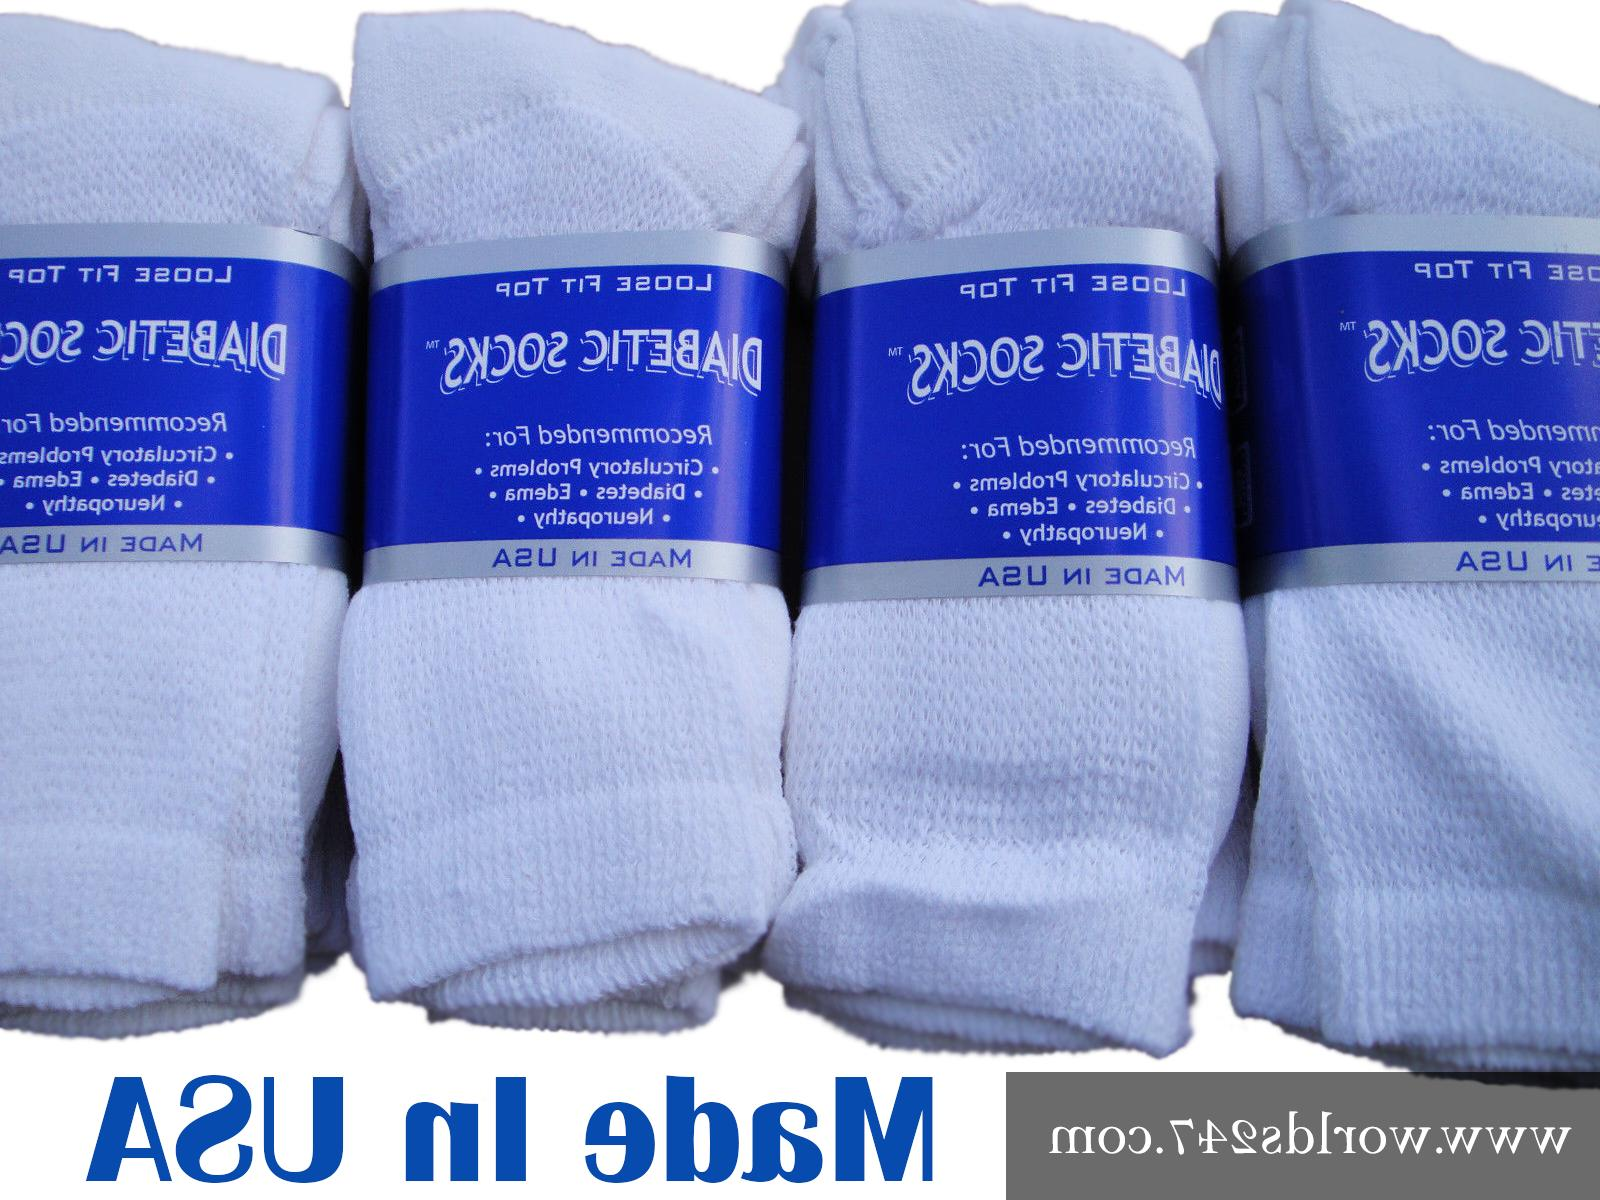 BEST QUALITY CREW DIABETIC SOCKS 6,12,18 PAIR MADE IN USA SI